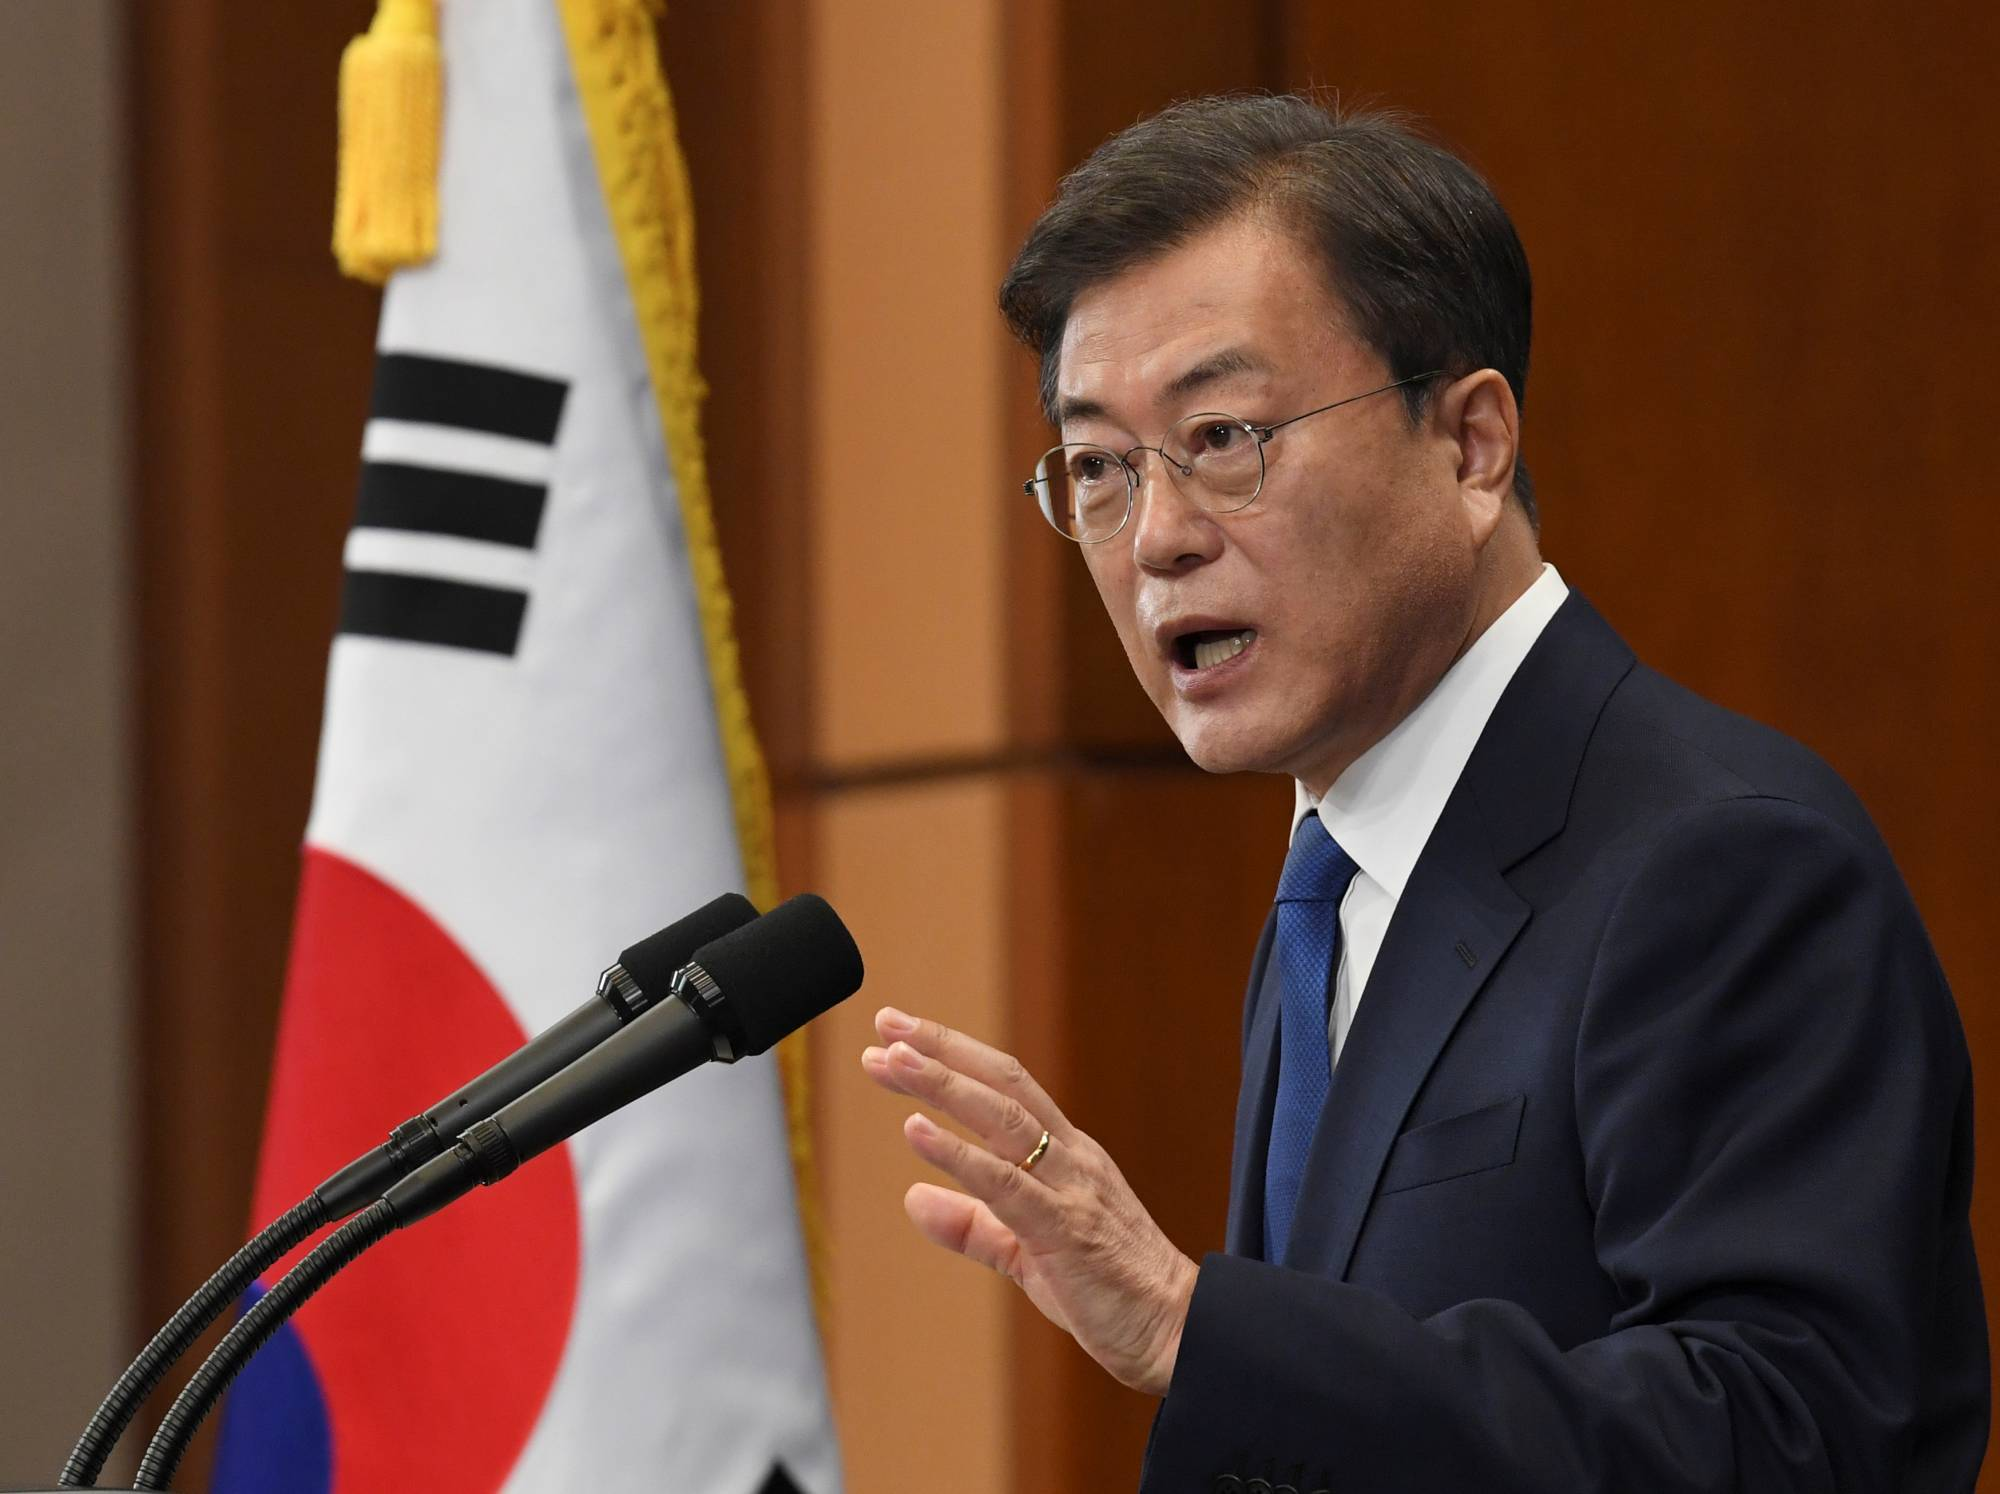 South Korean President Moon Jae-in speaks on the occasion of the third anniversary of his inauguration in Seoul in May. President Moon extended warm greetings to Prime Minister Yoshihide Suga in a virtual meeting during the East Asia Summit. | POOL / VIA REUTERS